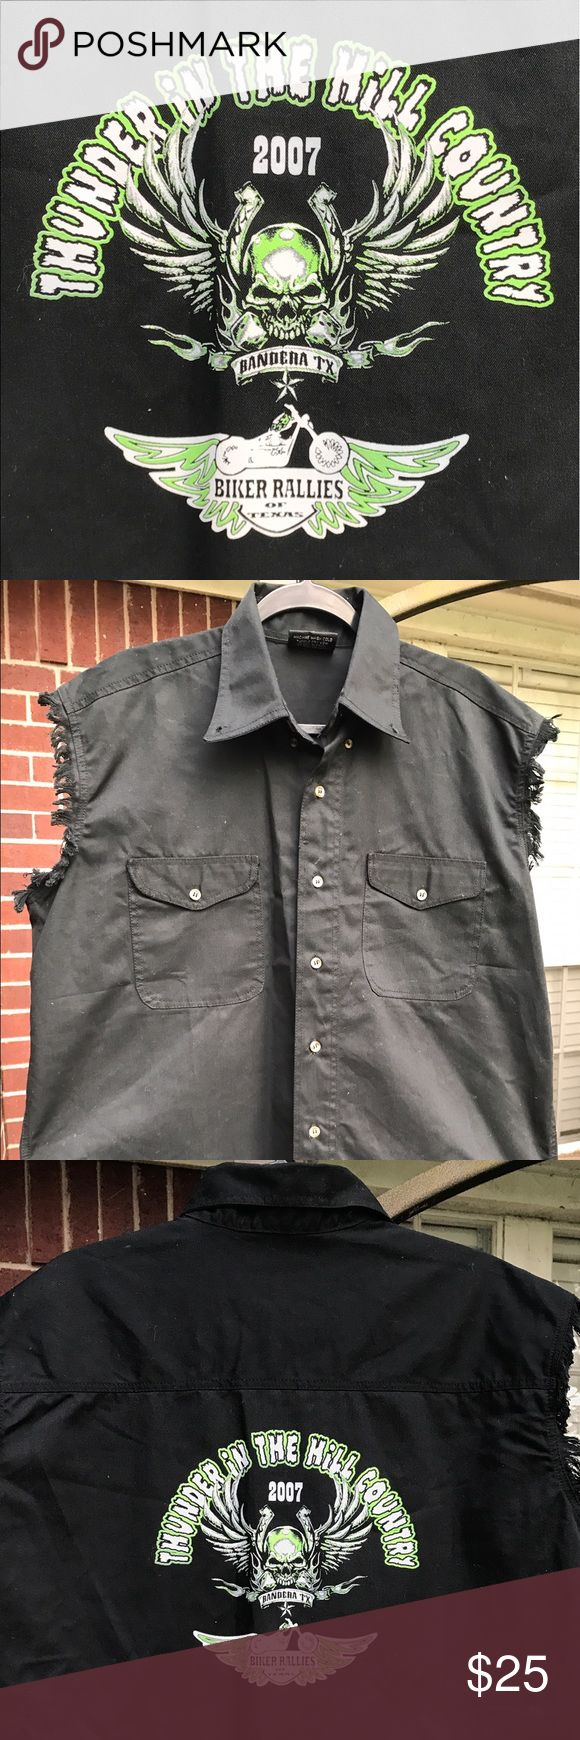 """Men's Black size Large Frayed Sleeveless Shirt Men's Graphic Black Size Large """"Thunder in The Hill Country"""" """"Bandera, TX"""" """"Biker Rallies in Texas"""" -- Frayed Sleeveless Button Shirt.  Can be worn as is or with a short sleeve or long sleeve t-shirt. Chest 25"""" Length 33"""" is 100% cotton.  Thick Shirt comes with extra buttons. Allstate Denim Shirts Casual Button Down Shirts"""